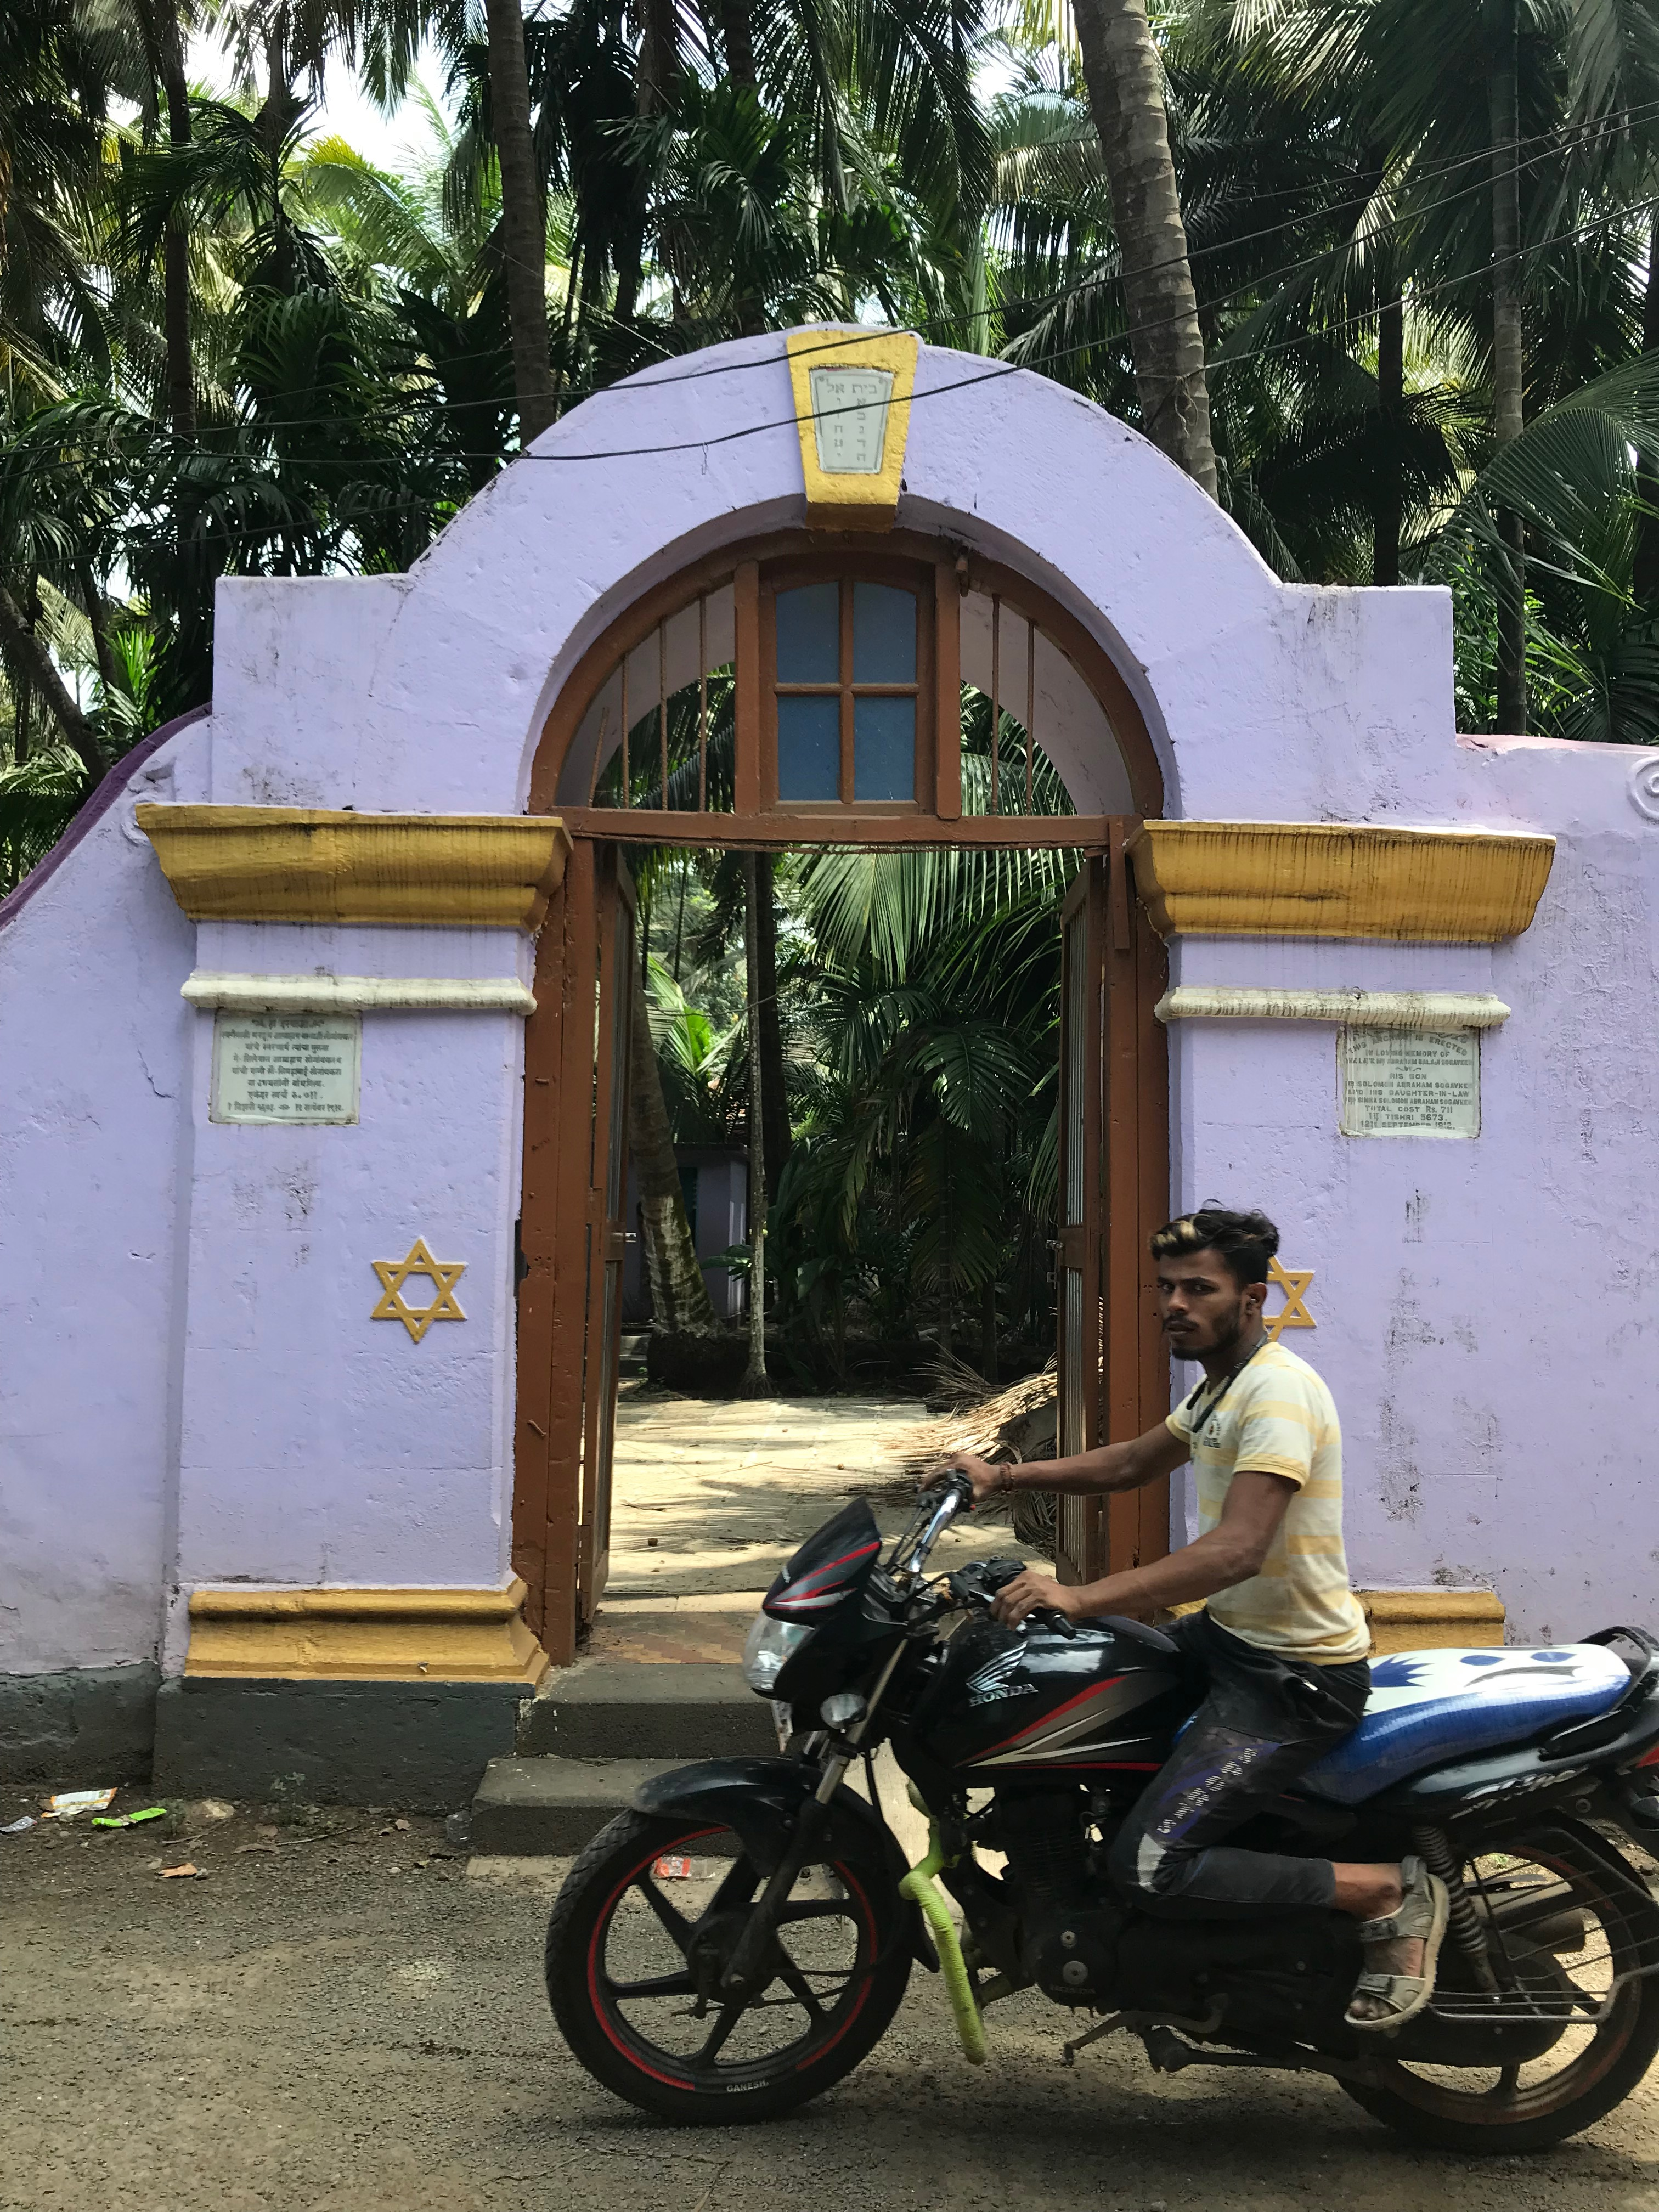 The exterior of a shul in the Konkan Coast area just south of Mumbai. Its believed that Jewish refugees from the Roman invasion of Israel came here in around 70CE when they were shipwrecked here on the way to Kerala. These Bene Israeli Jews lived here isolated from any other Jewish community until the 1500s when a Jew from Kochin discovered their community. The shul is still used a a few times a year during the chagim. Miriam Groner/JW